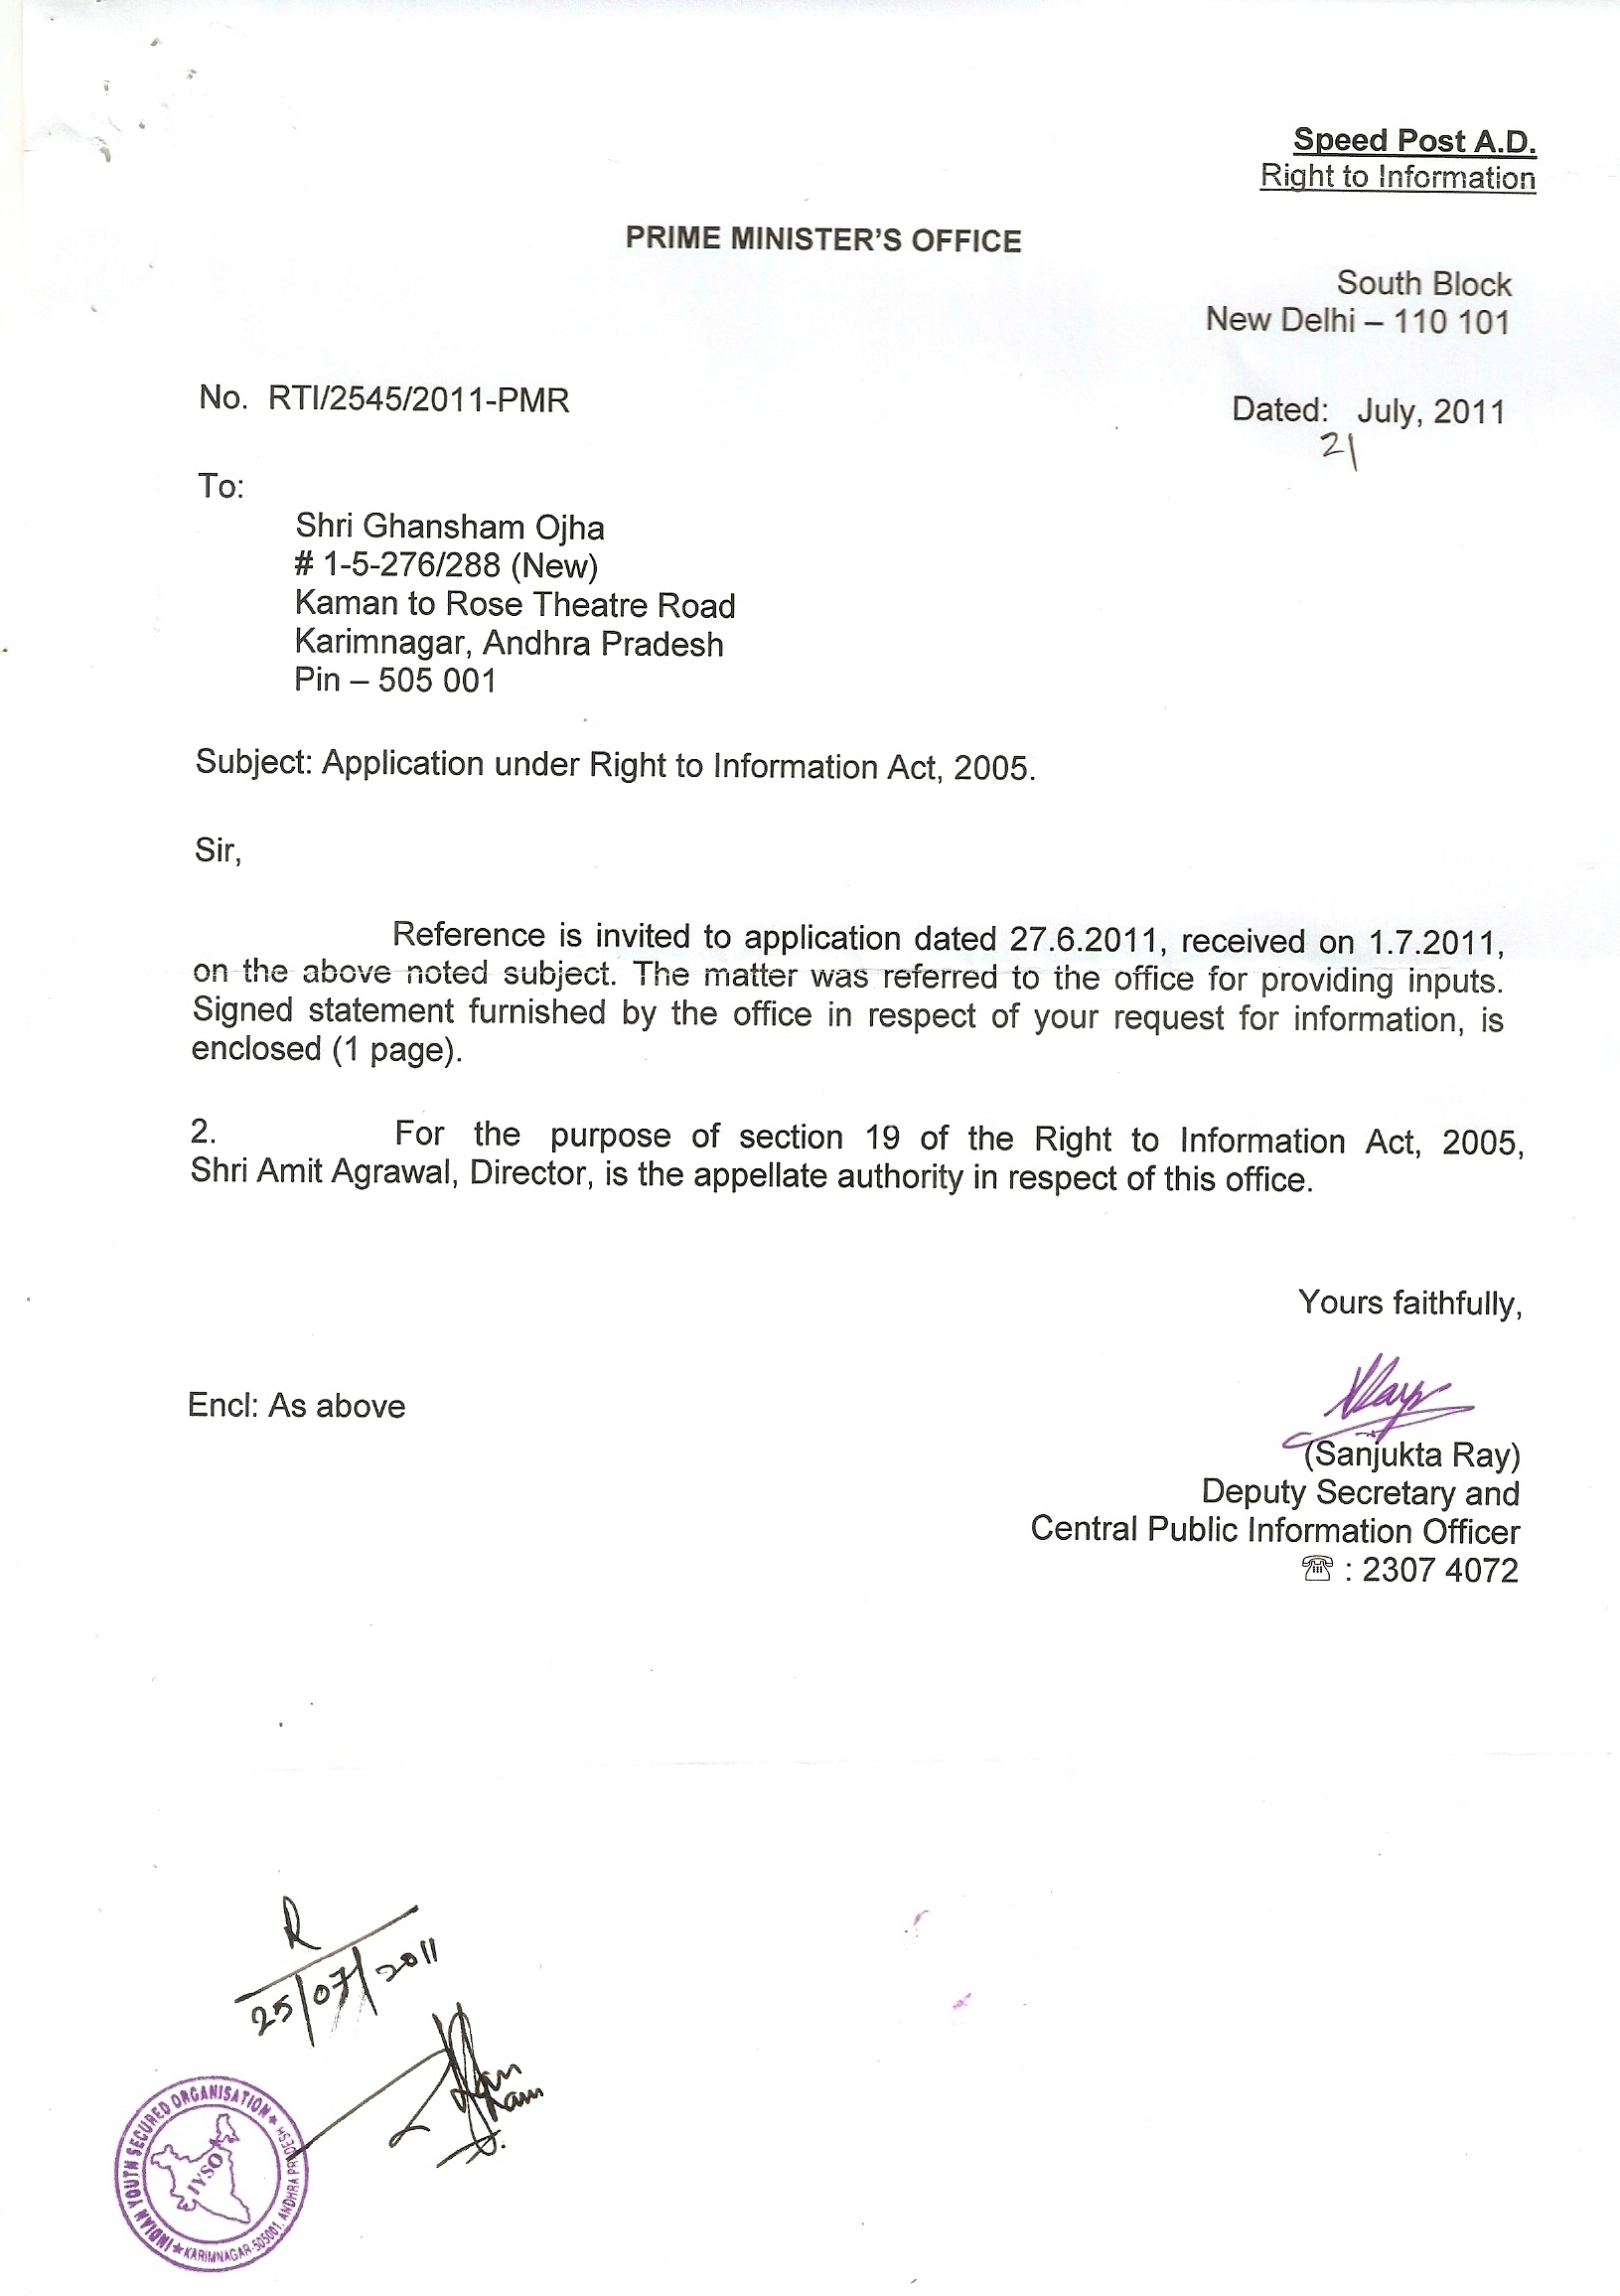 No Rti 2545 2011 Pmr Pmo Dated 21 07 2011 Letter Scanned Copy Page